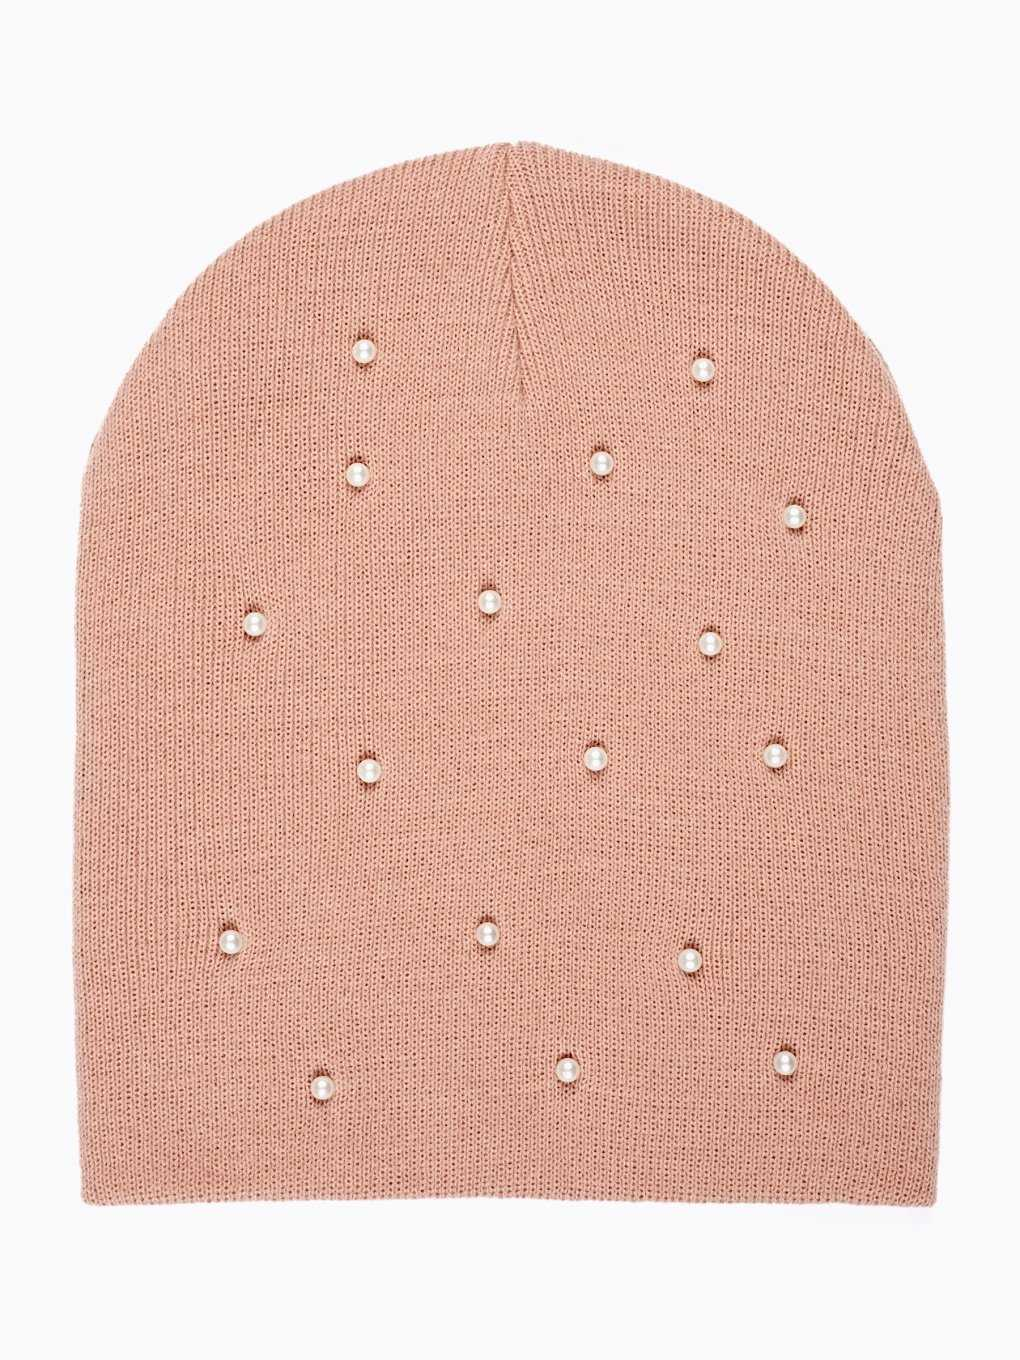 BEANIE WITH PEARLS